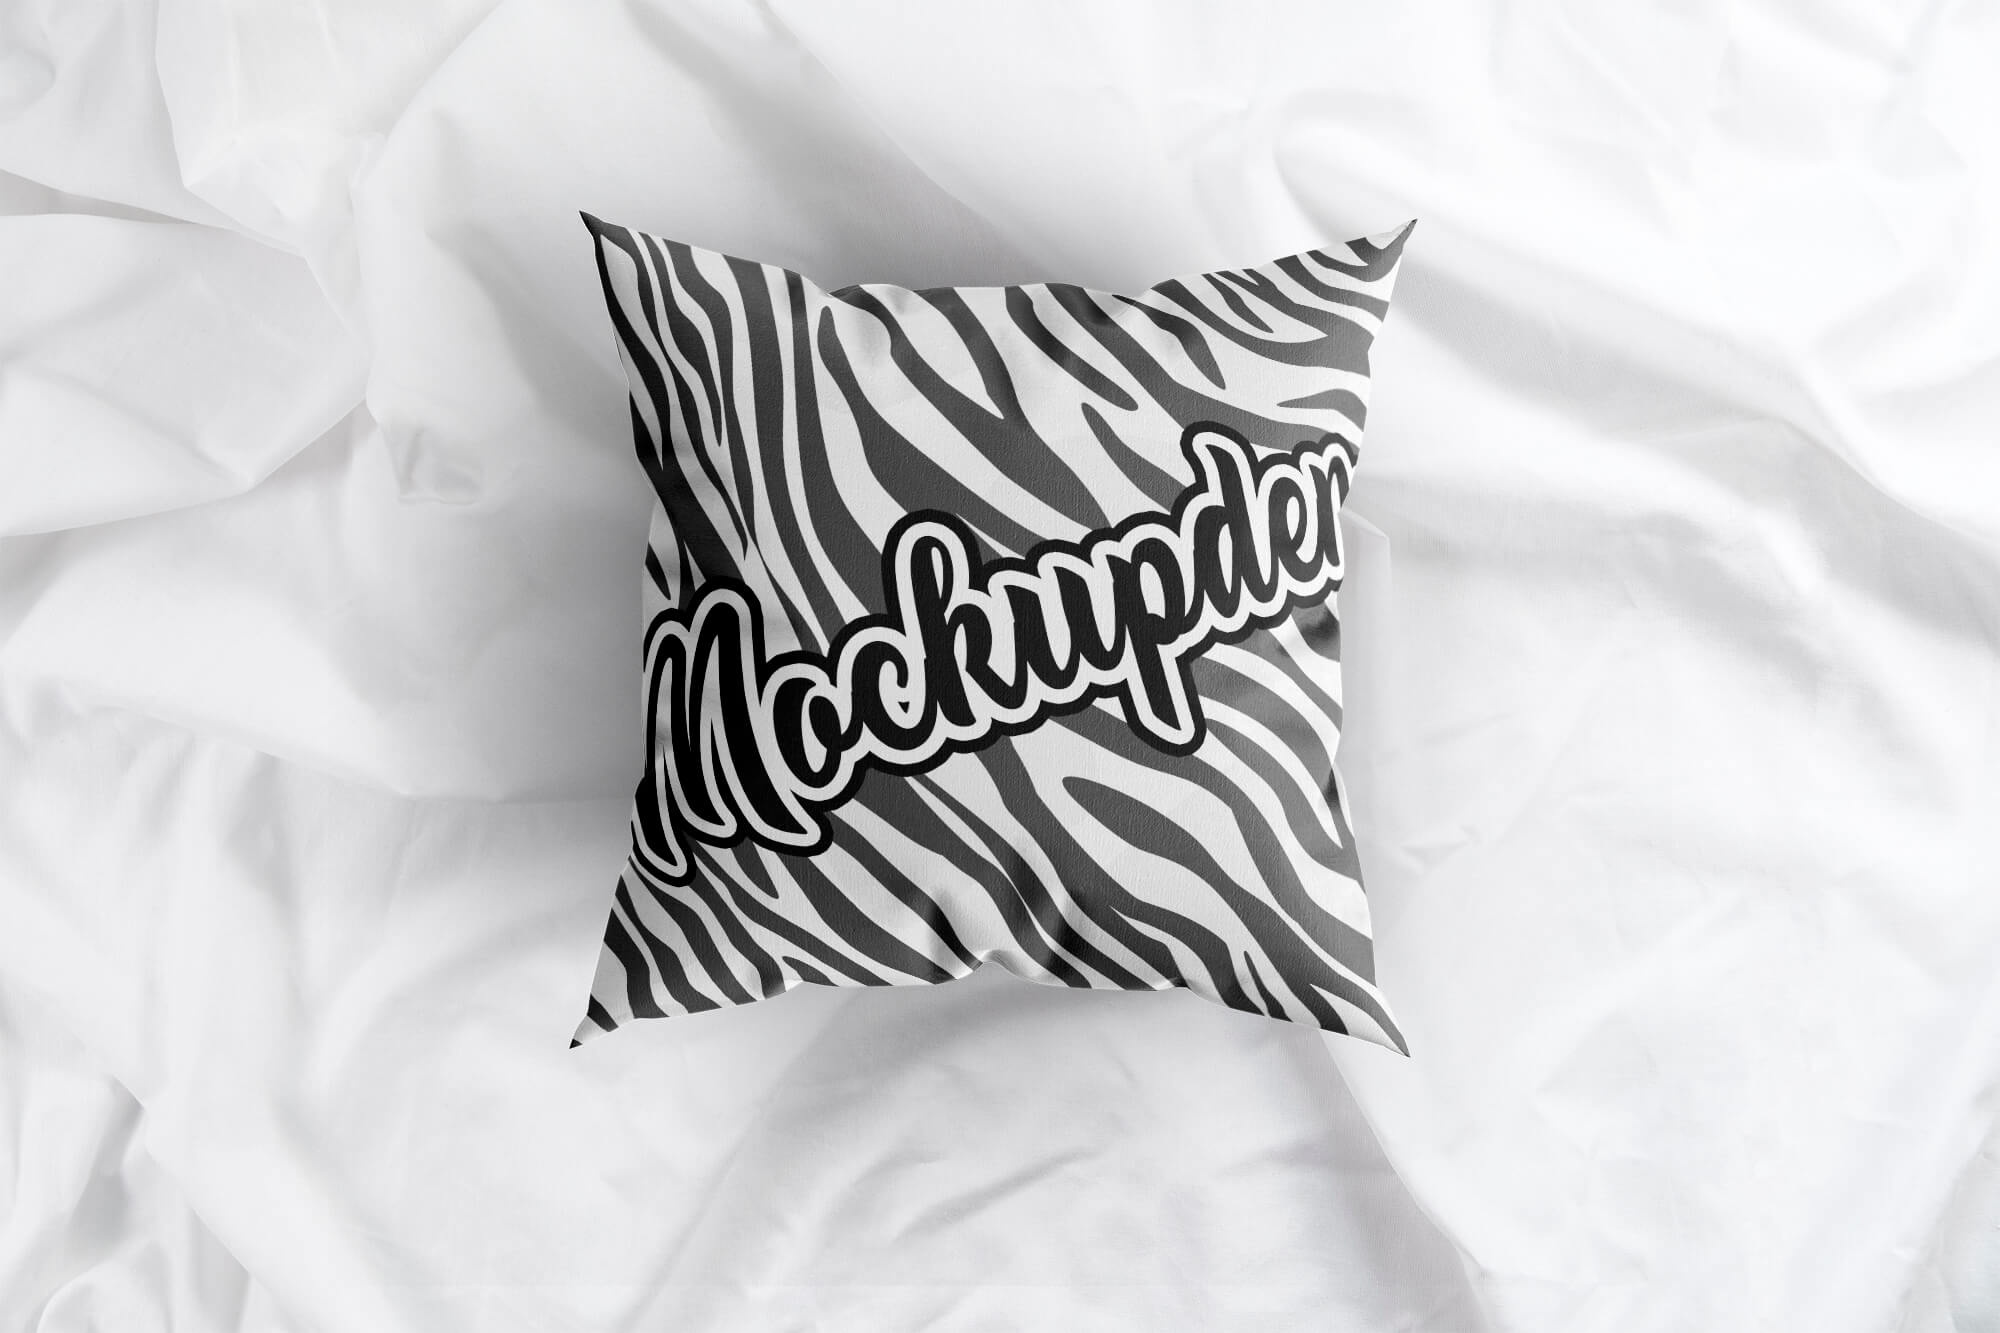 Free Top View Pillow Mockup PSD Template